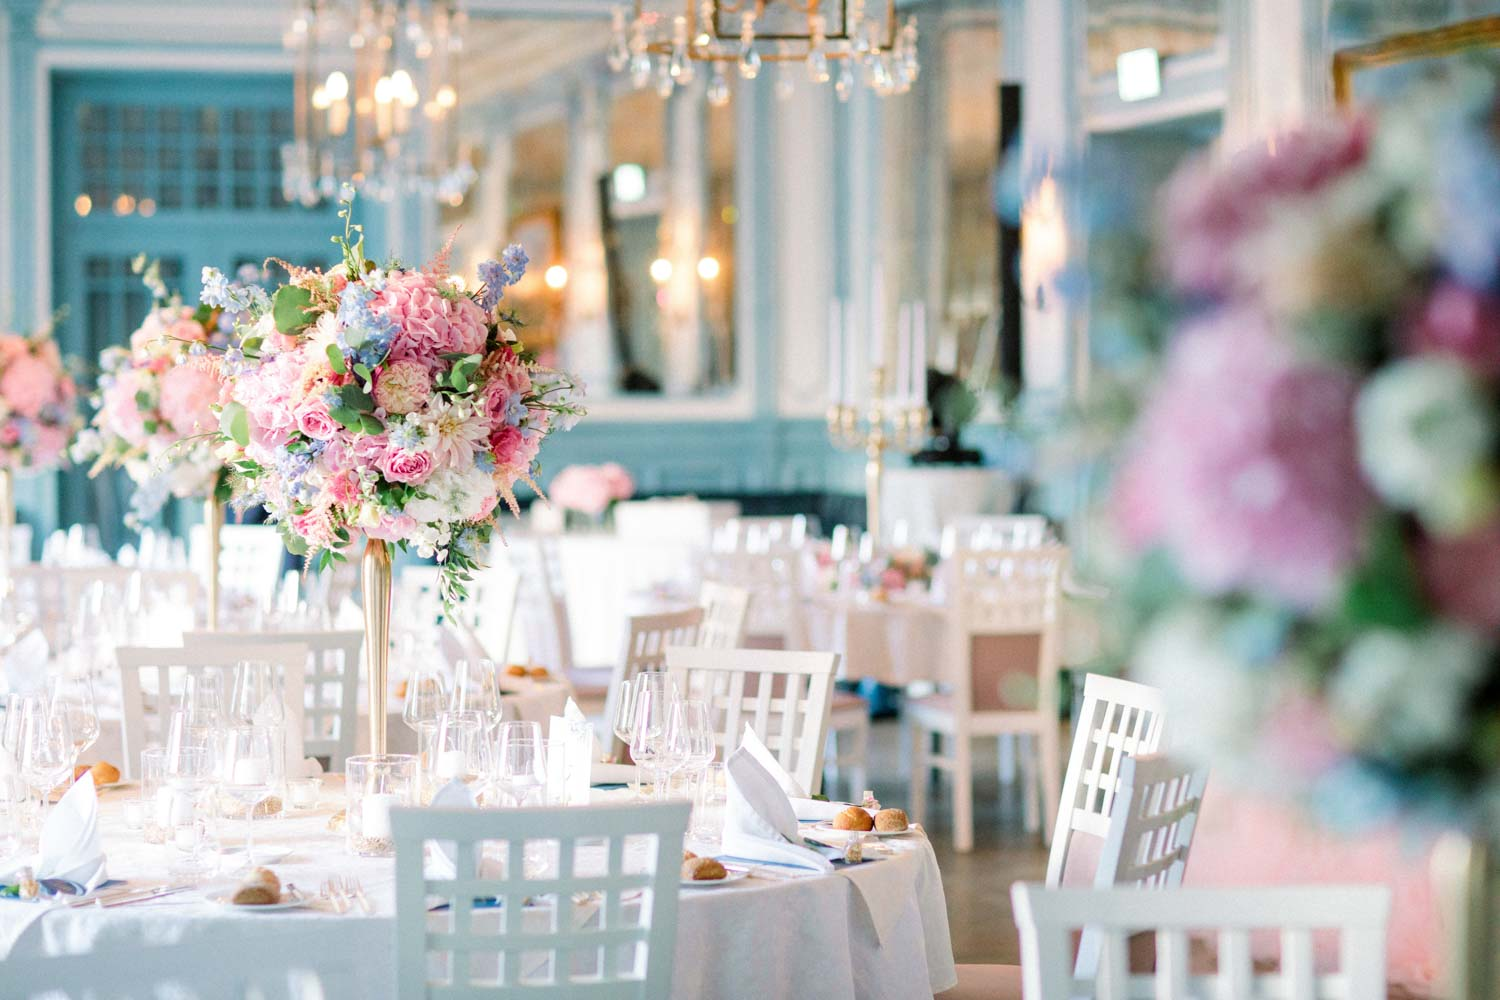 finesdecor.ch_ceremony_chateau_guetsch_flowers_rosa_lightblue_dinnerdecoration_06